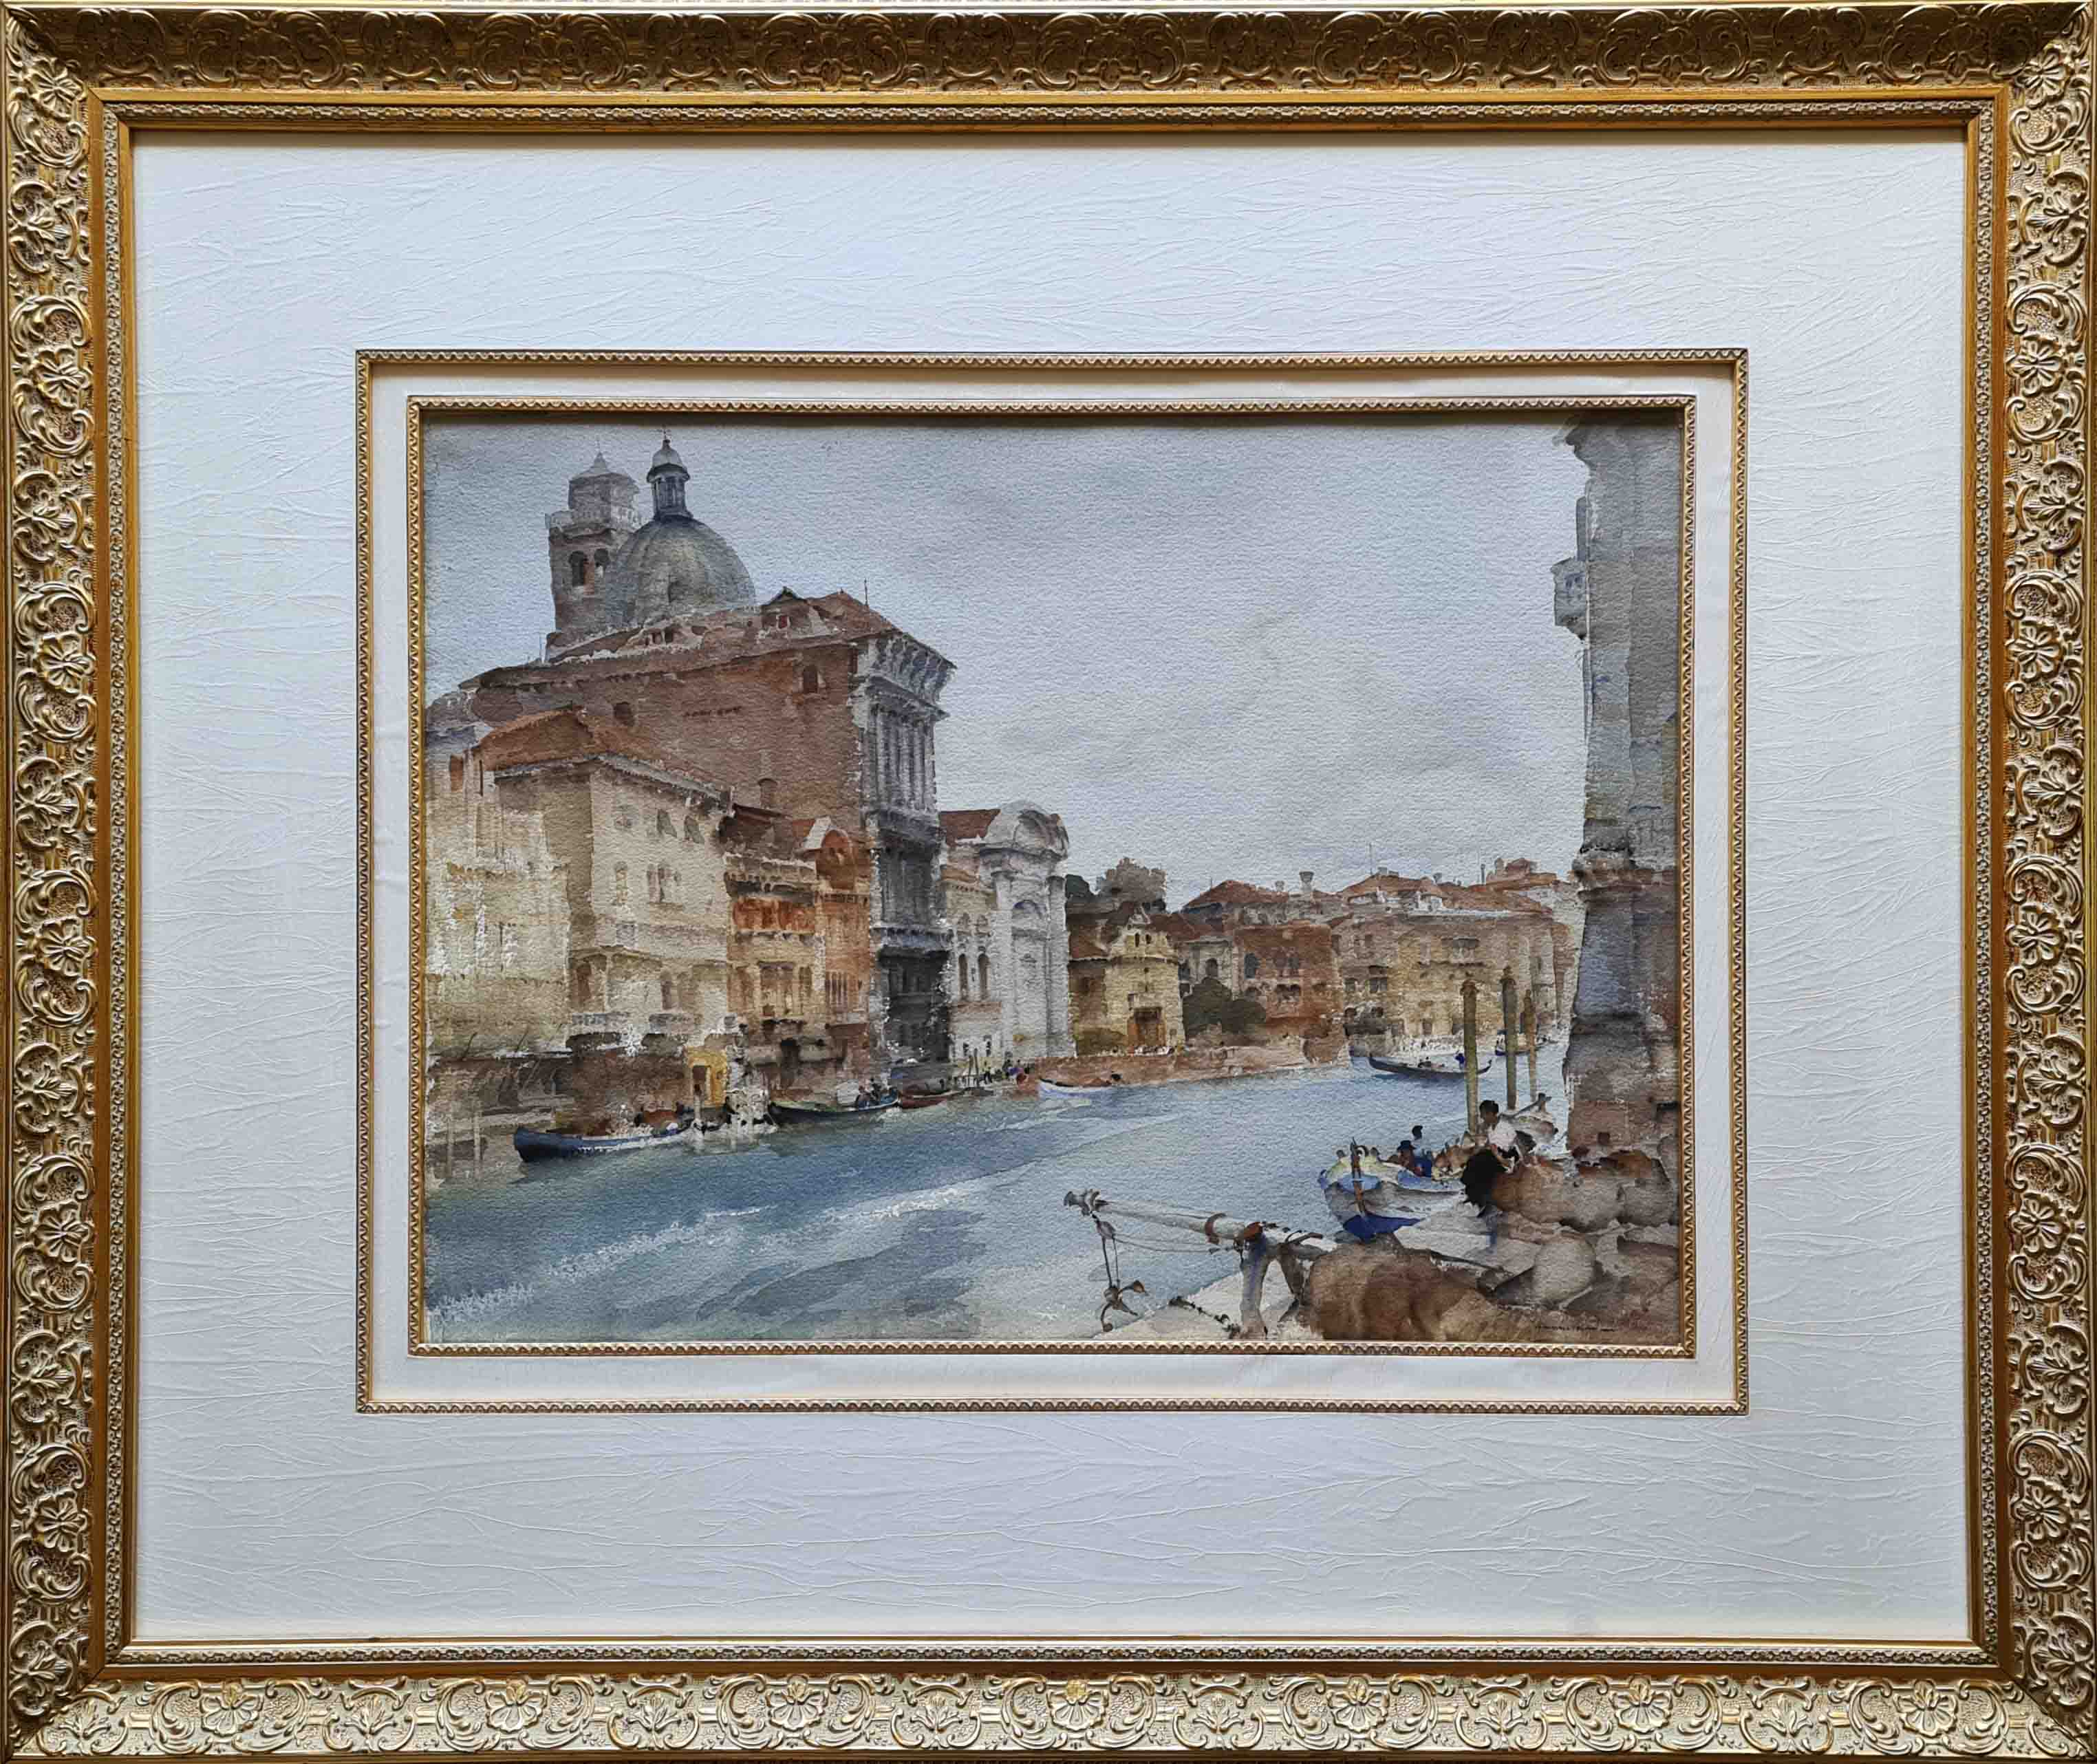 russell flint, original painting, Palazzo, San Geremia, Grand Canal, Venice